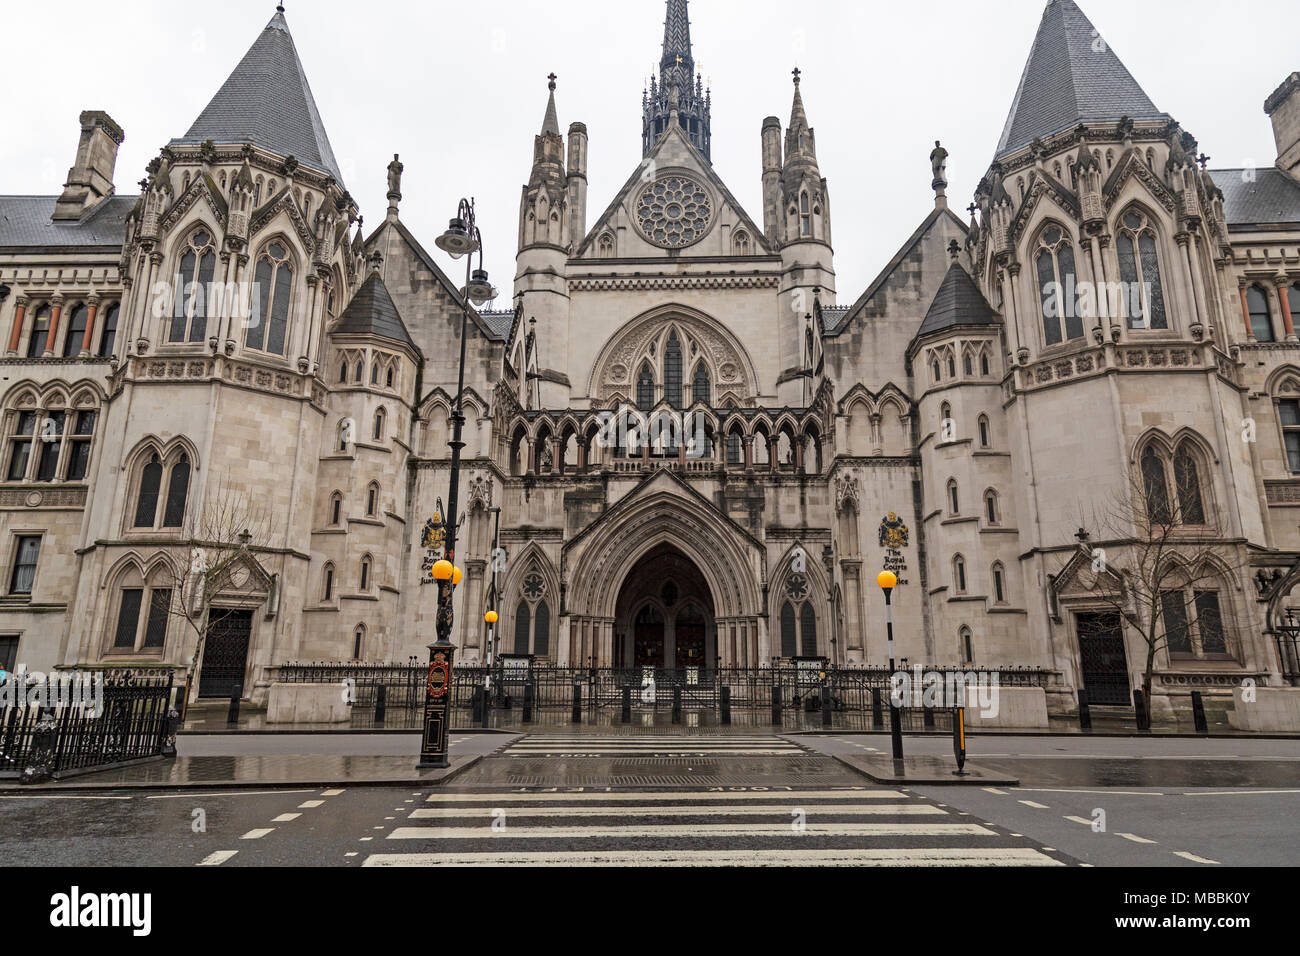 The Royal Courts Of Justice on The Strand in London, England. - Stock Image